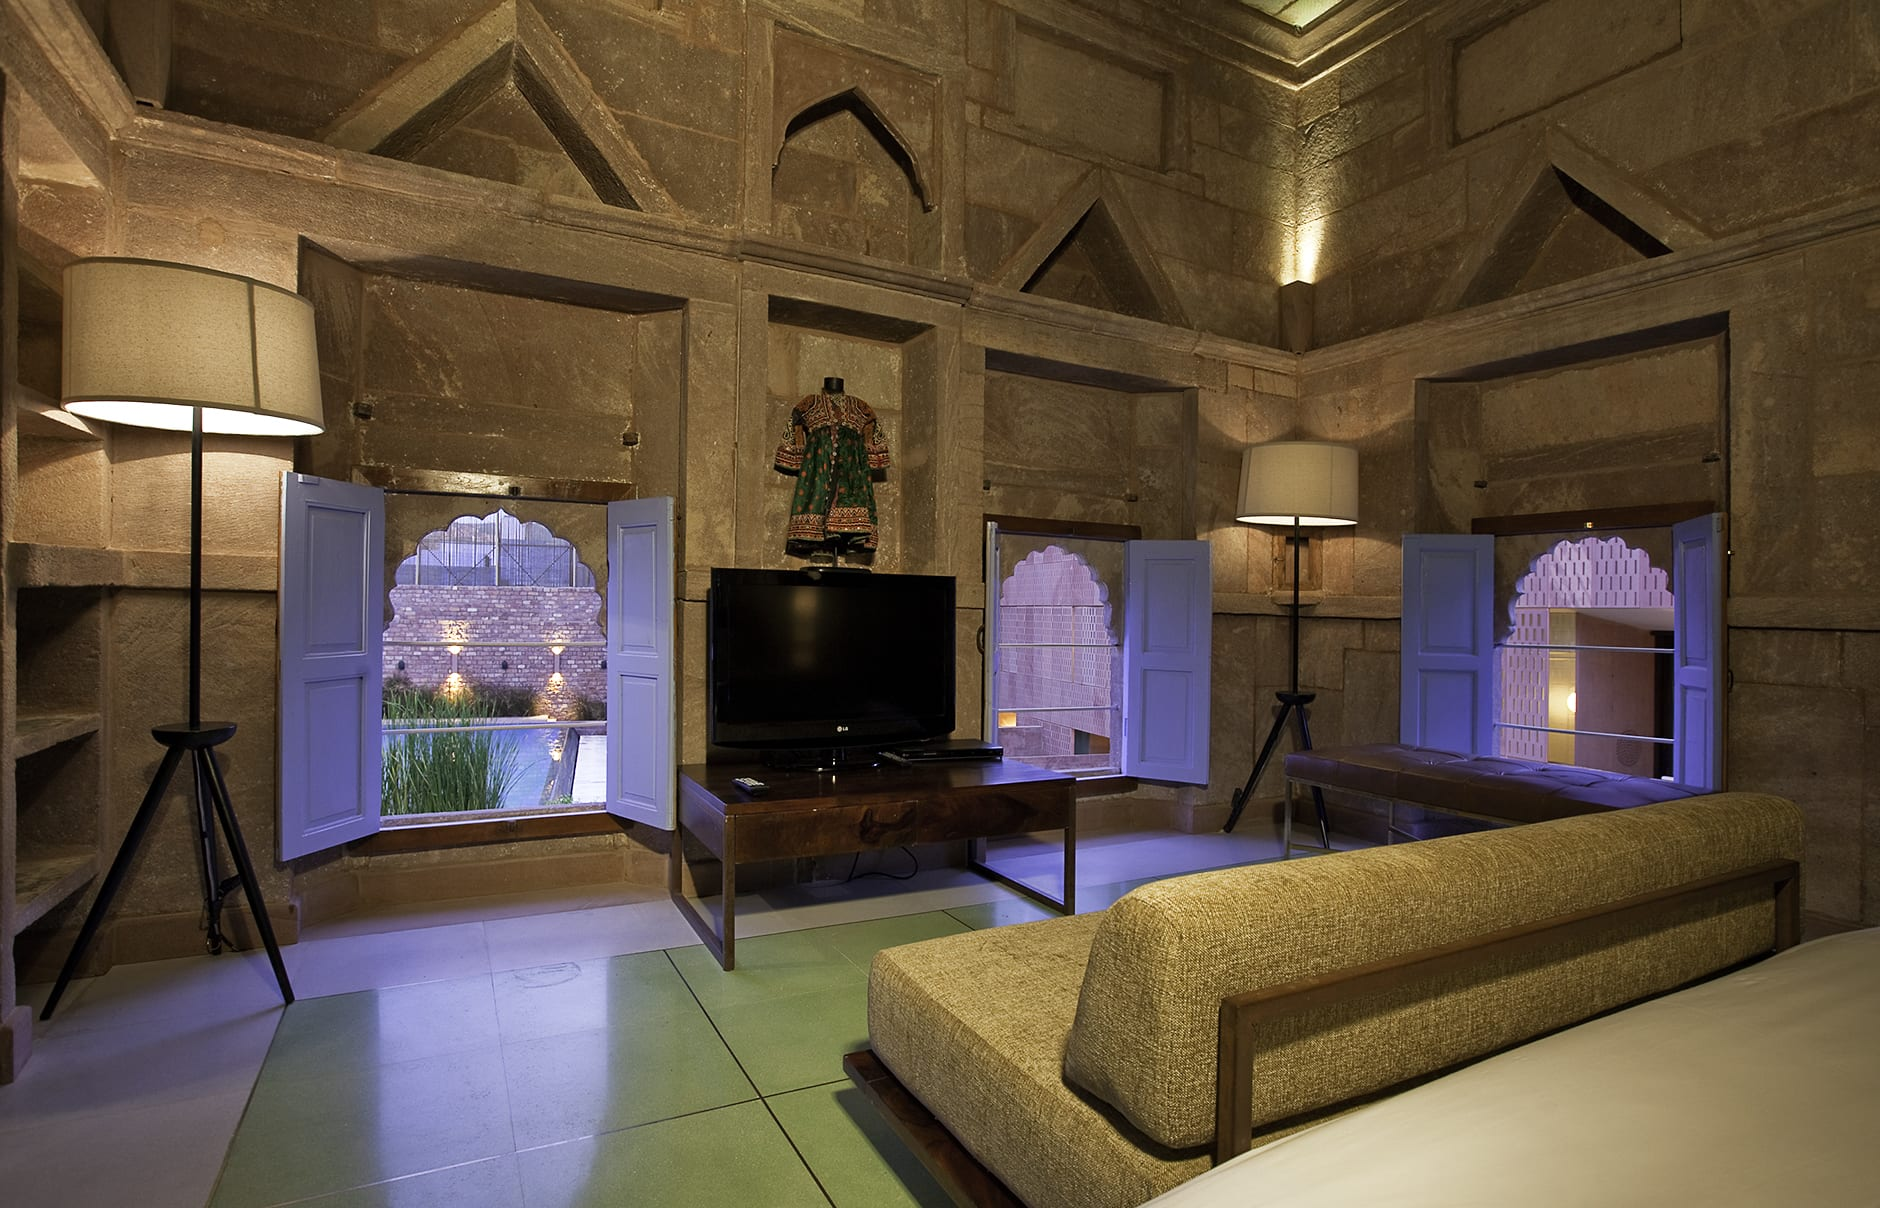 Heritage Suite. Raas Jodhpur, India. Luxury Hotel Review by TravelPlusStyle. Photo © Rass